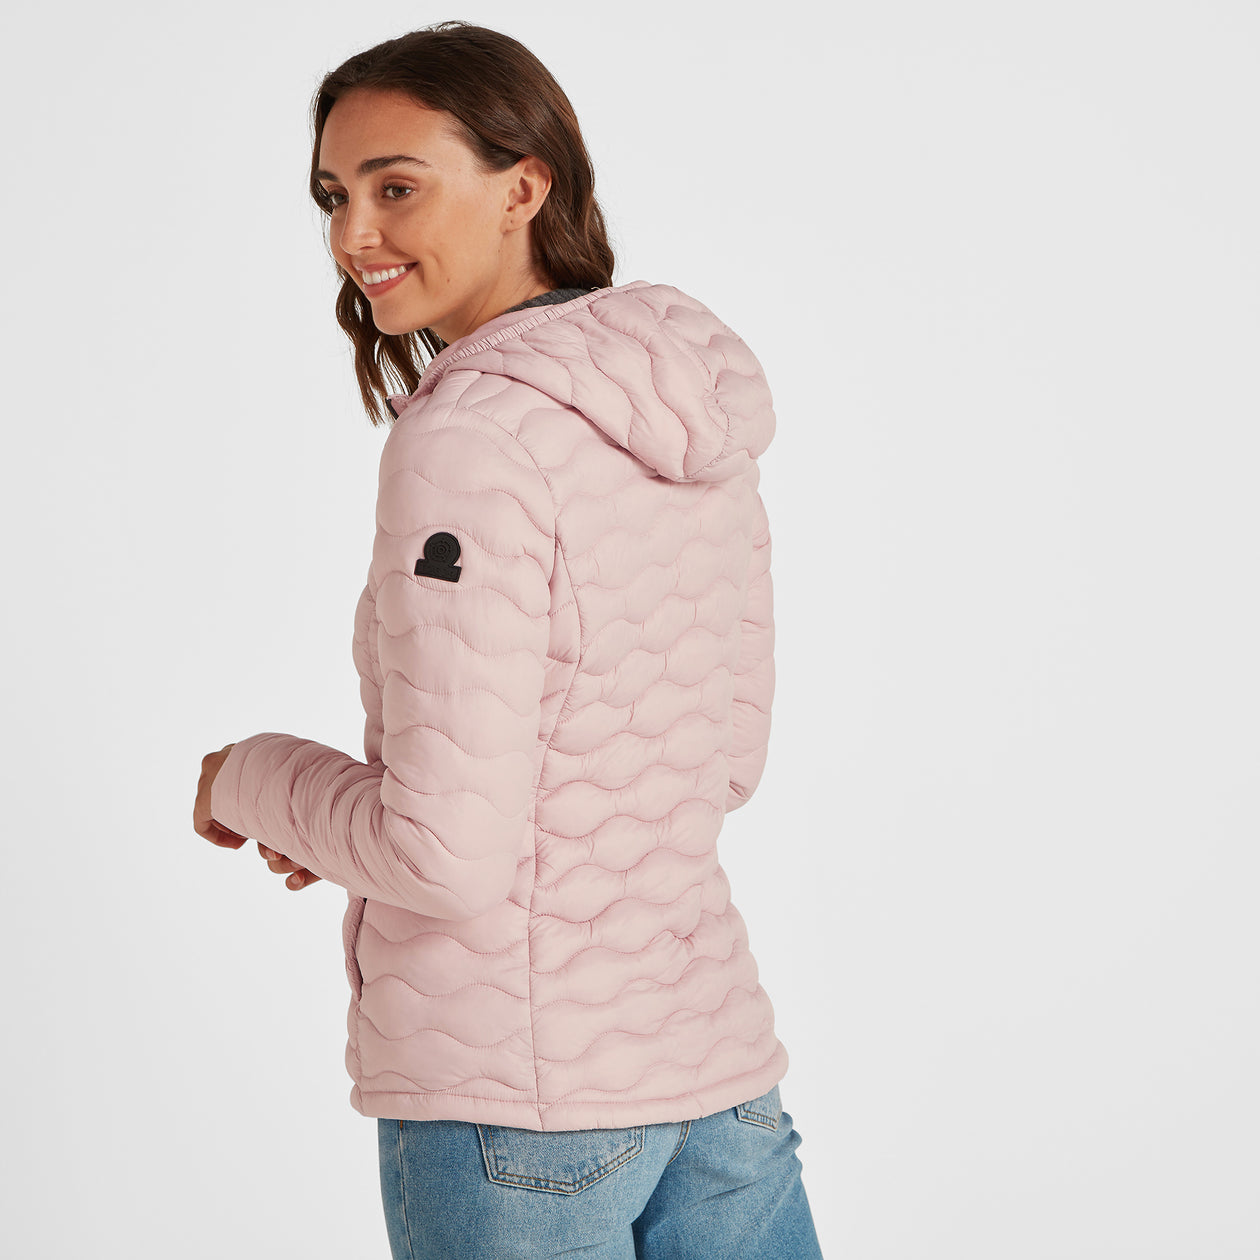 Brimham Womens Thermal Jacket - Rose Pink image 4